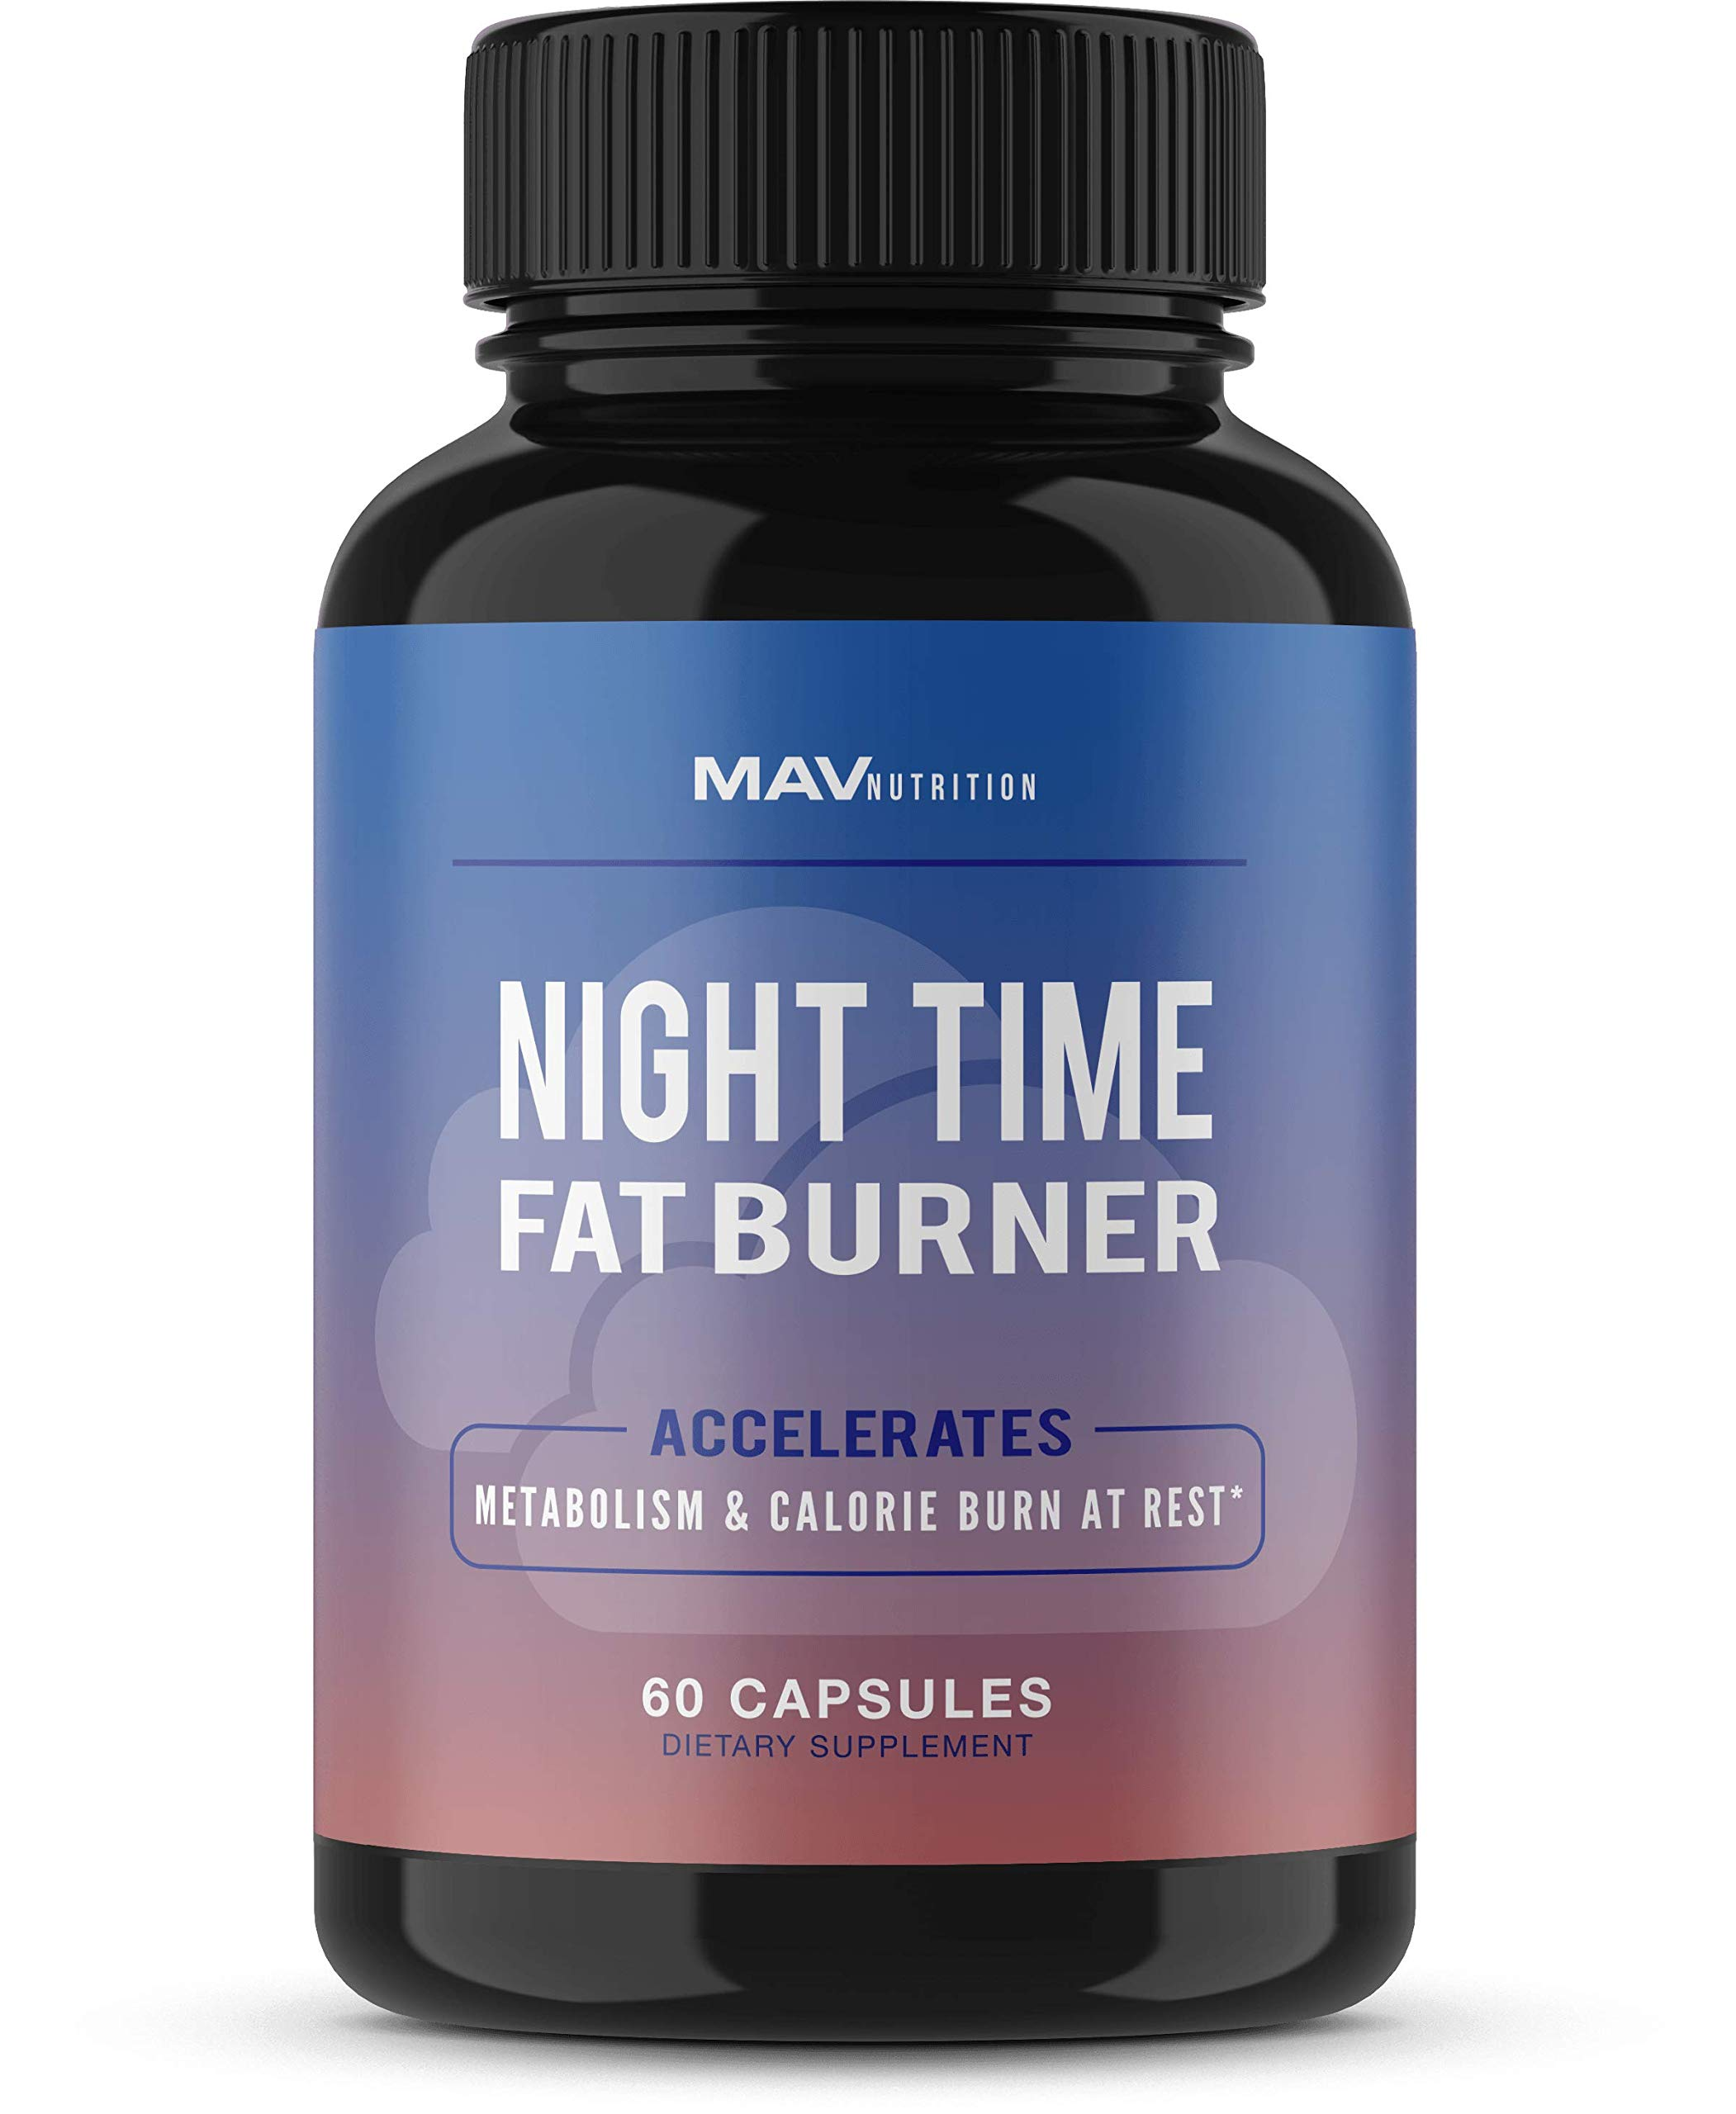 MAV Nutrition Weight Loss Pills Fat Burner for Night Time as Appetite Suppressant and Metabolism Boost, Non-GMO, 60 Count by MAV NUTRITION